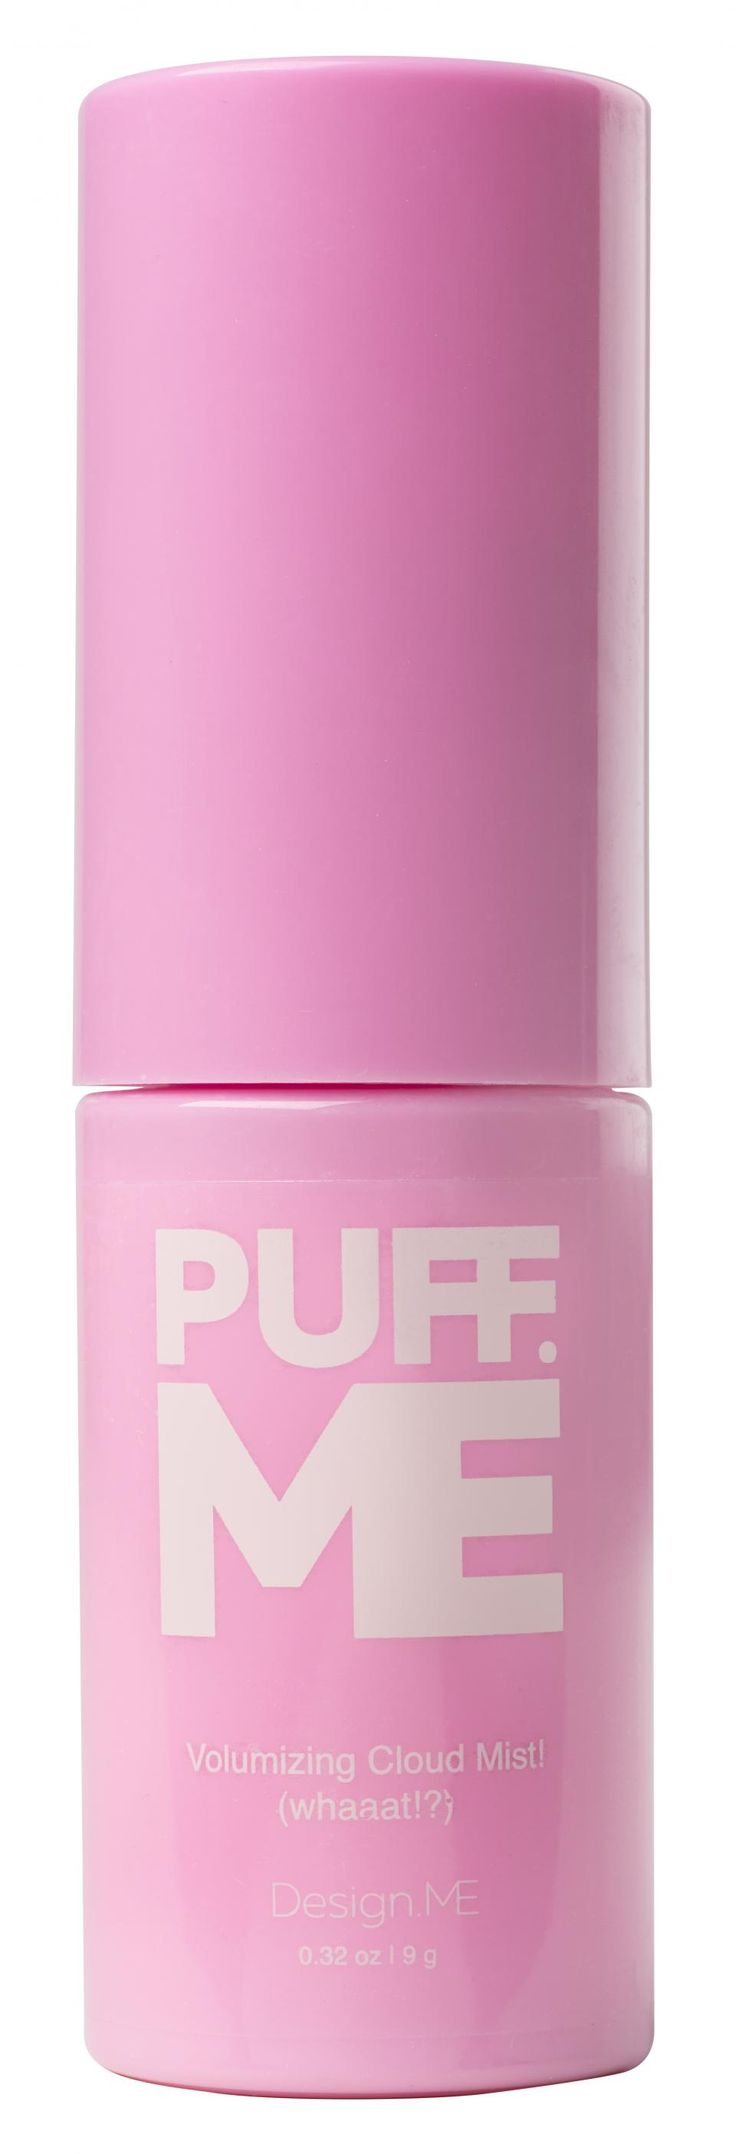 IntroducingPuff.Me Volumizing Cloud MistfromDesign.Me, a new breed of volumizing powder, that creates a literal cloud-burst of volume powder for high-precision root lift or texturizing. Puff.Me releases long, smooth, targeted puffs of powder that hit just the spot needed to boost volume, and add a touch of hold and texture, without drying the hair.